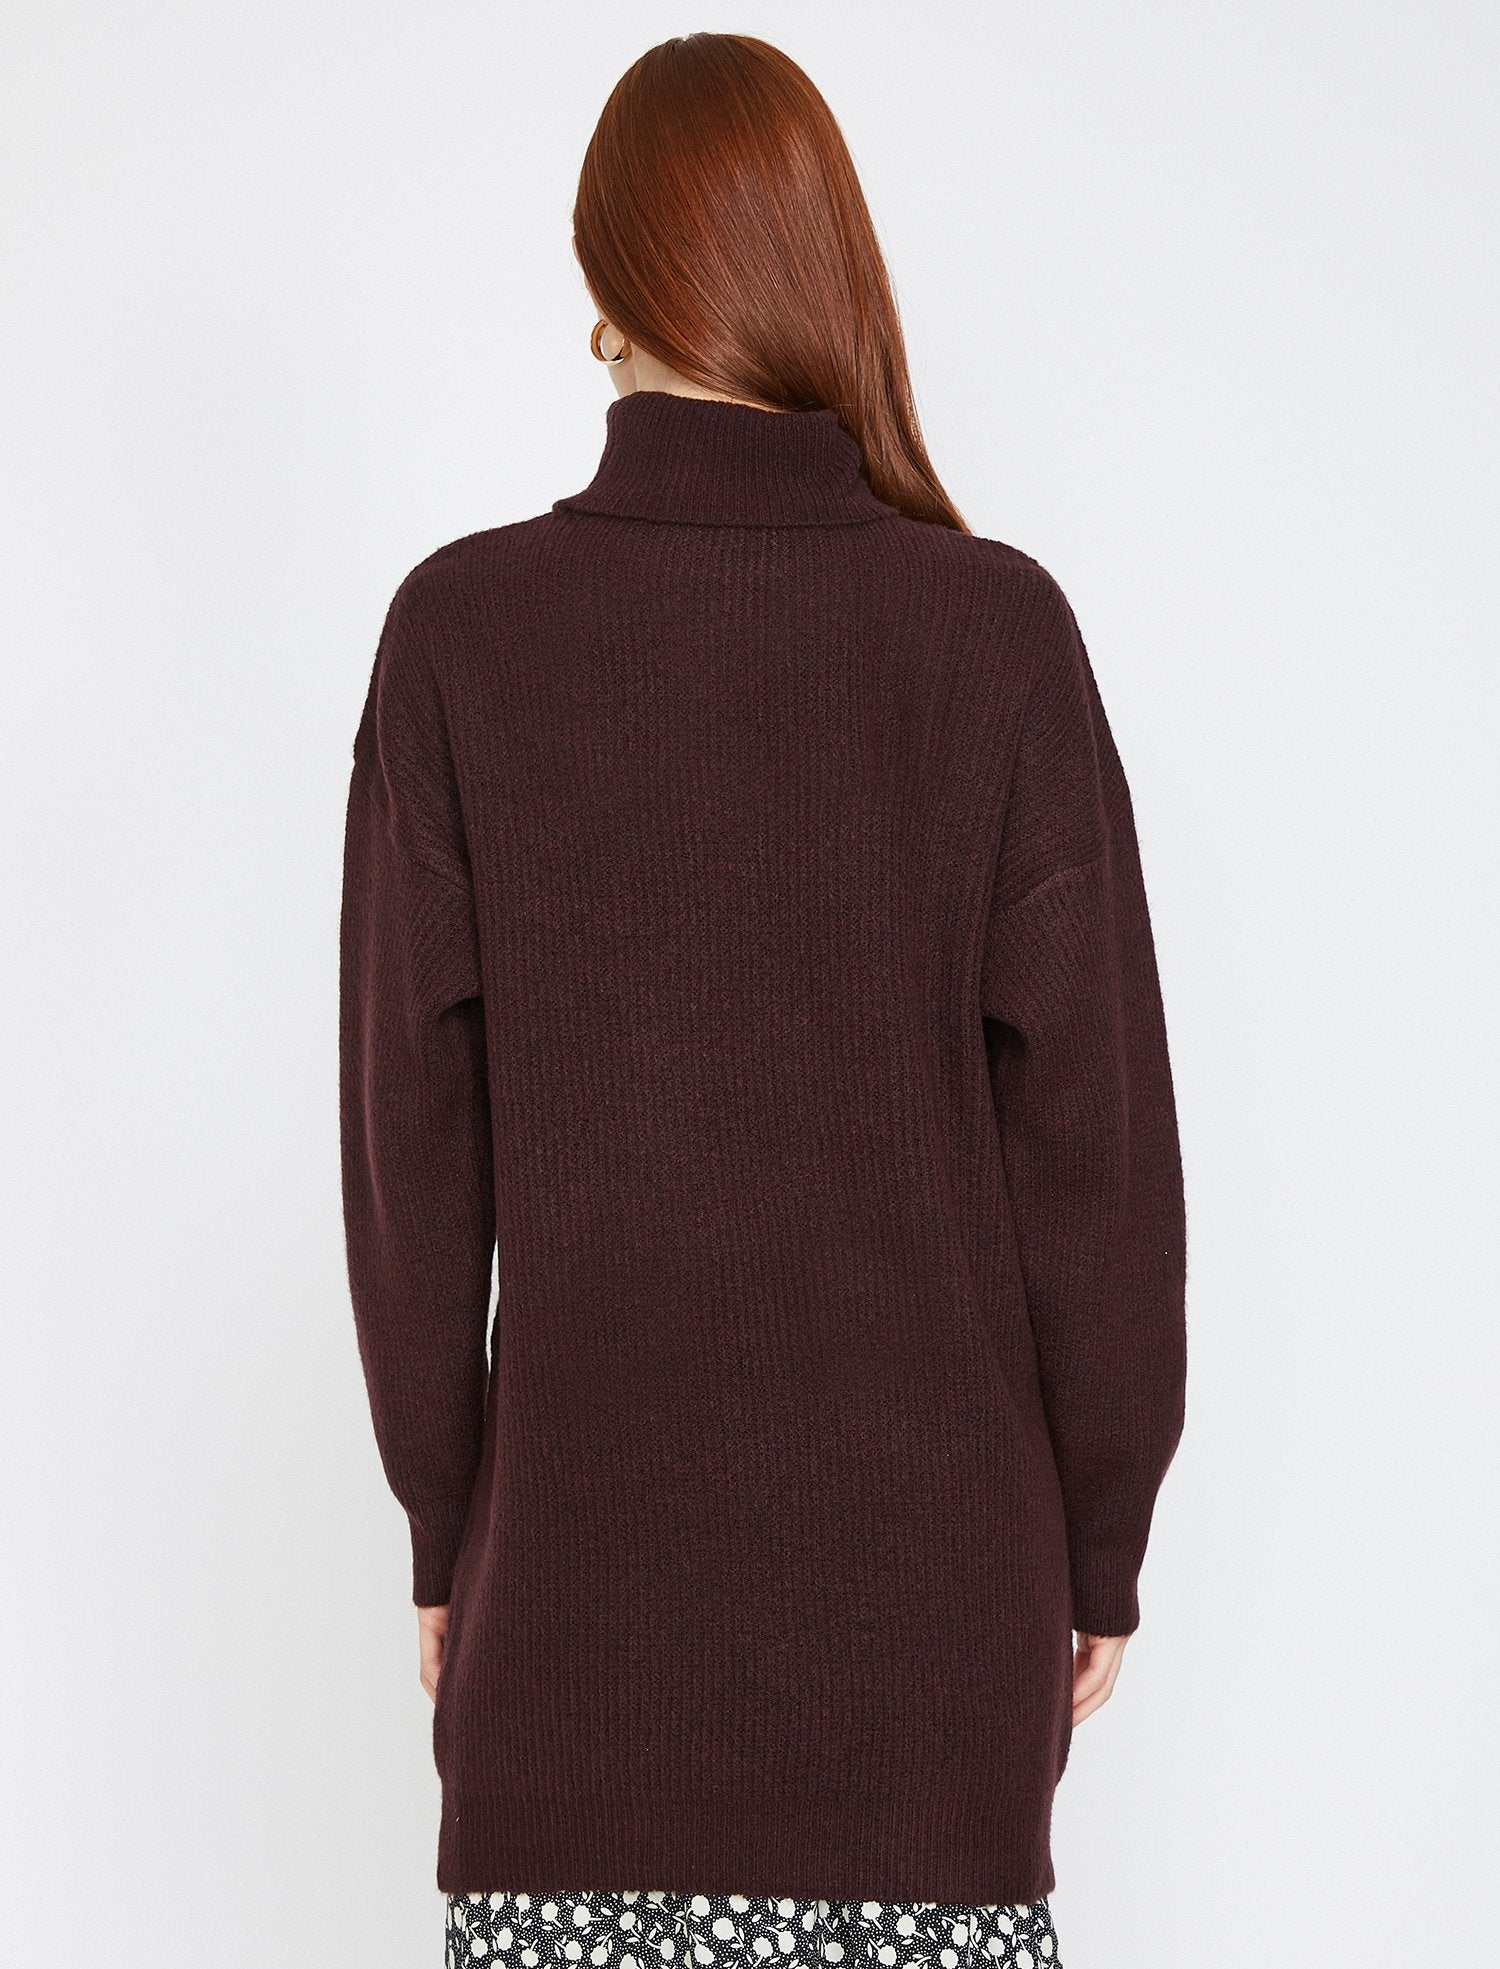 Oversize Turtle Neck Sweater in Bordeaux